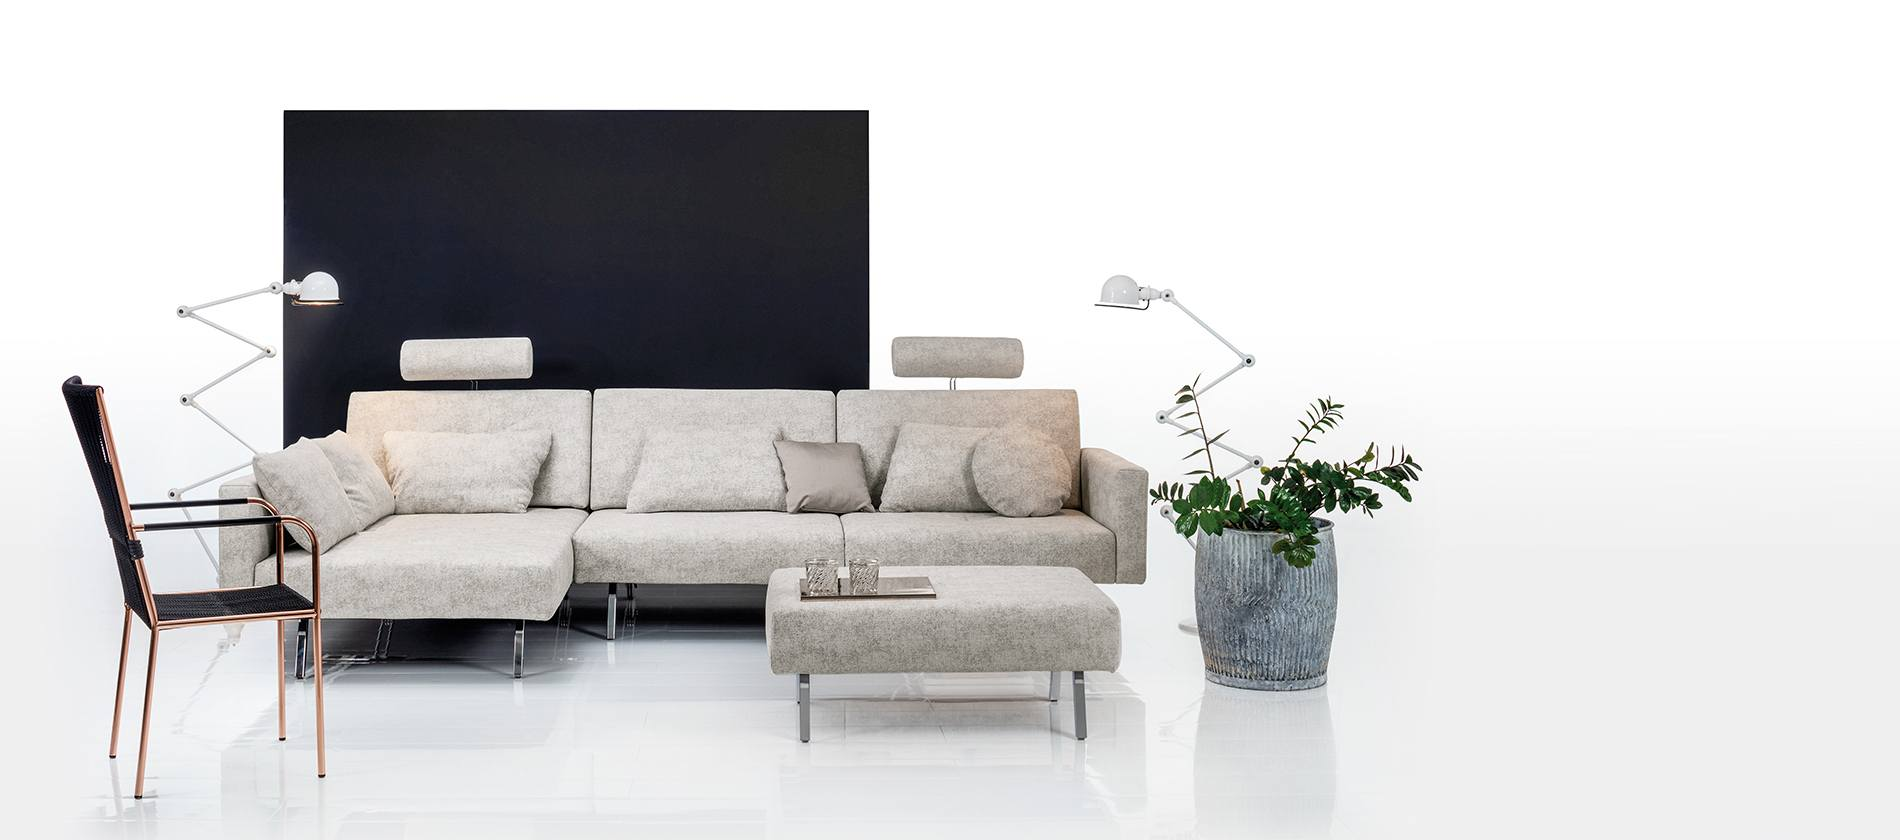 Designer Ecksofa Mit. Simple Sofa With Designer Ecksofa Mit ...